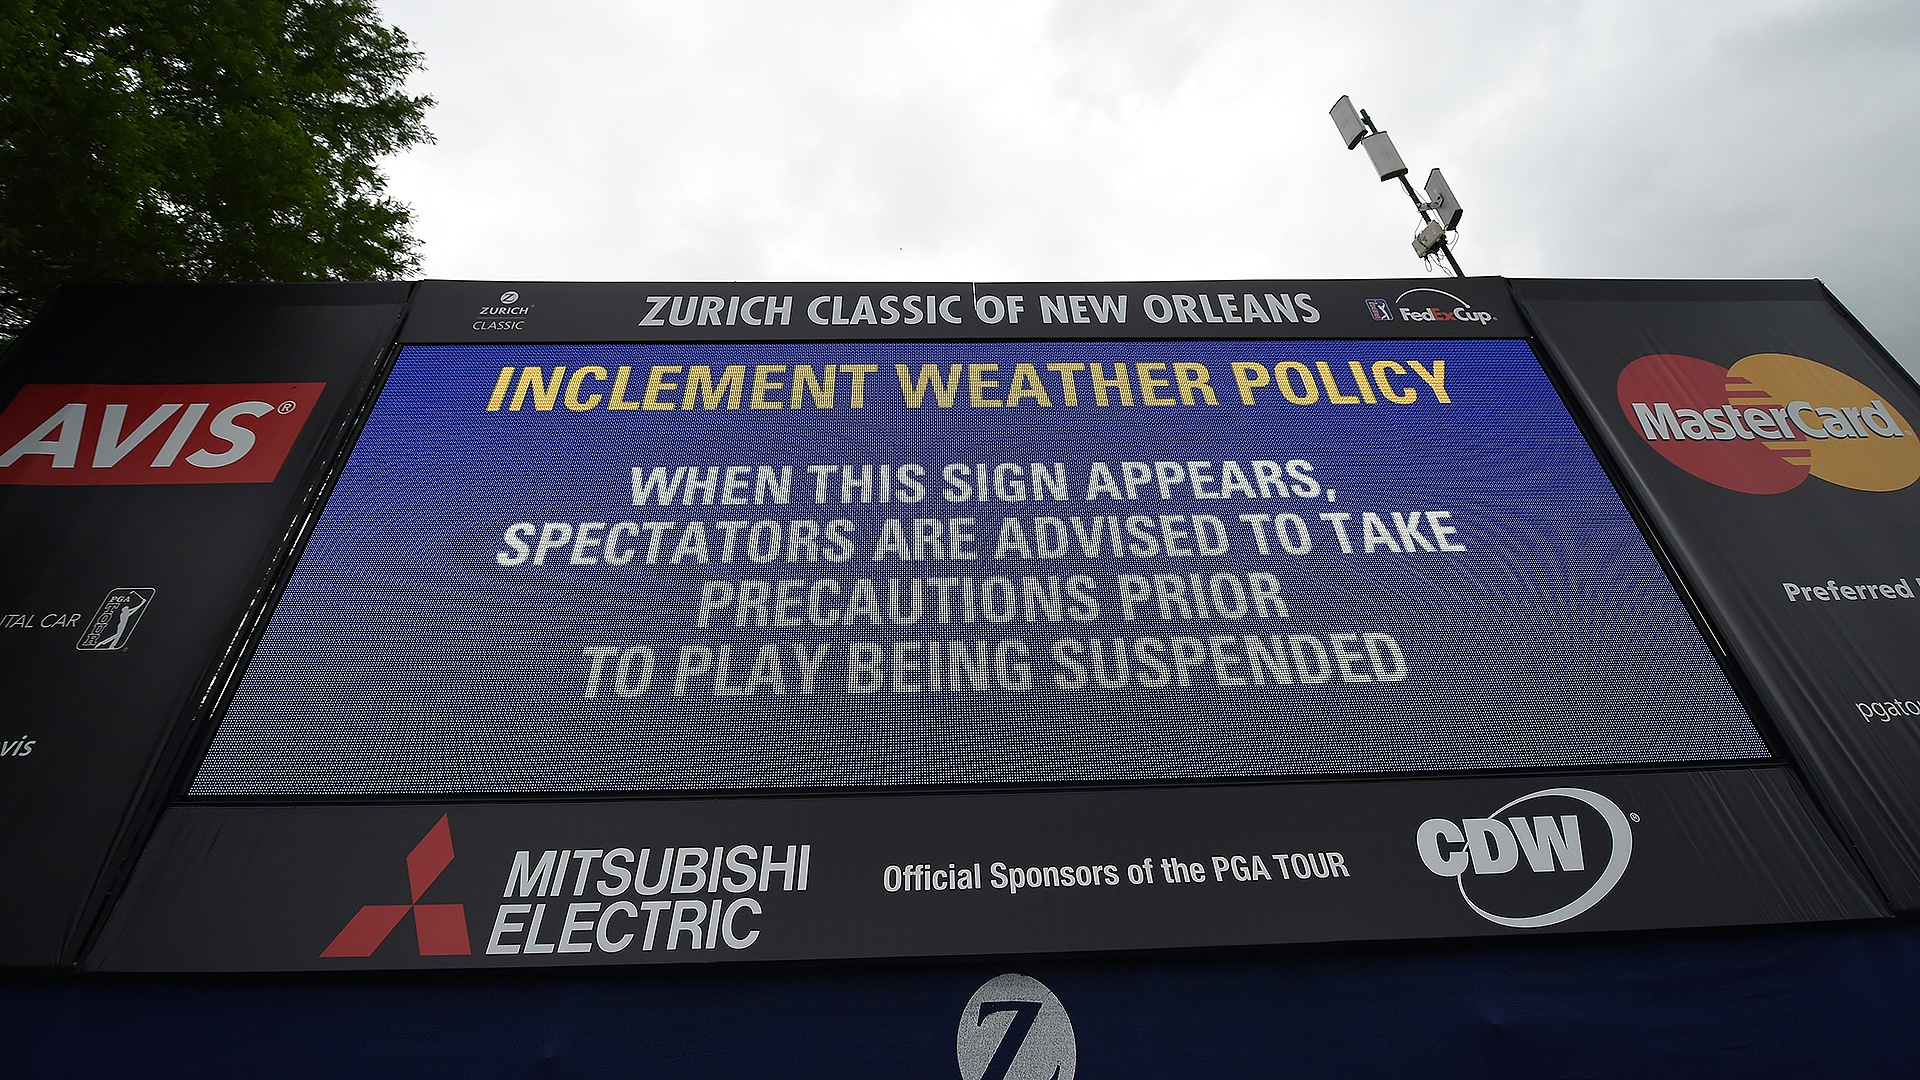 Zurich Classic Headed for Monday Finish After Another Delay